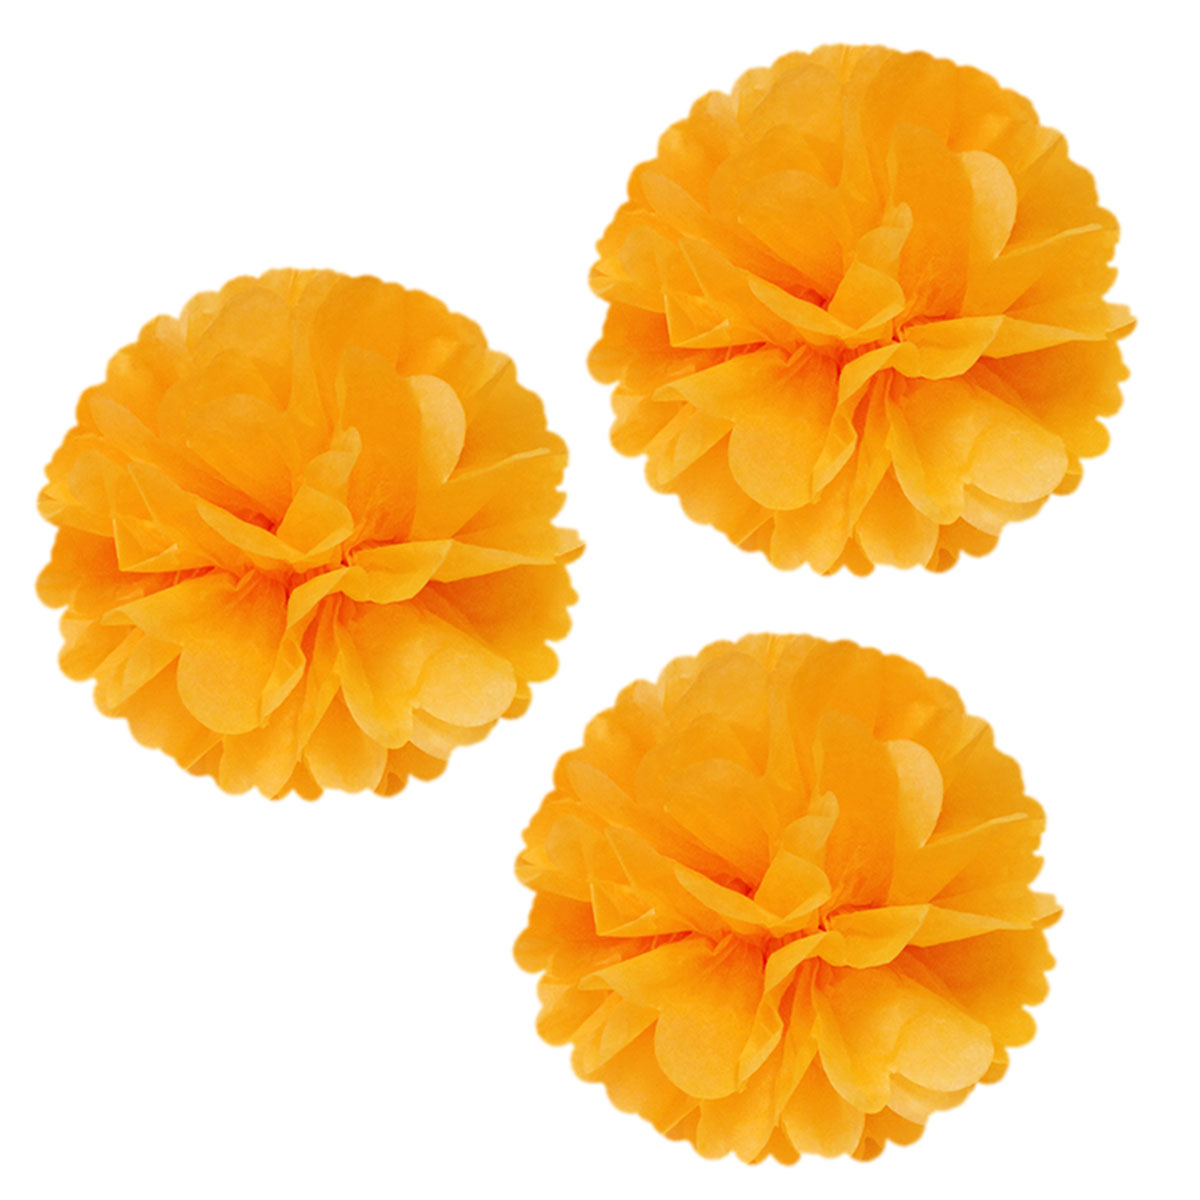 "Wrapables® 14"" Set of 3 Tissue Pom Poms Party Decorations for Weddings, Birthday Parties Baby Showers and Nursery Décor, Orange"